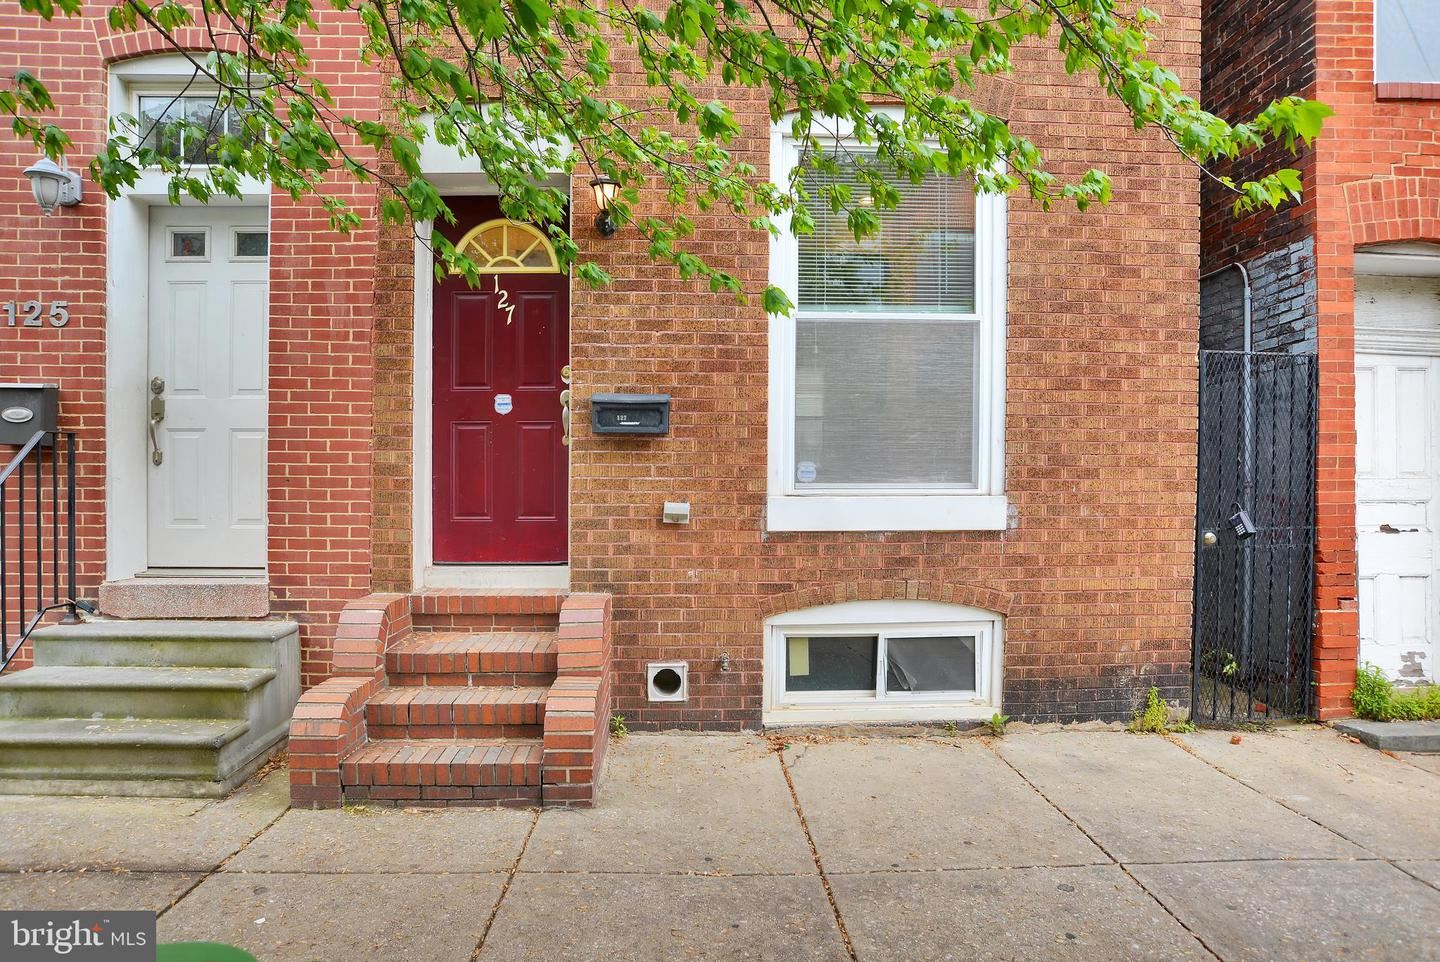 127 S ANN ST S, Baltimore, MD 21231 - MLS#: MDBA547936